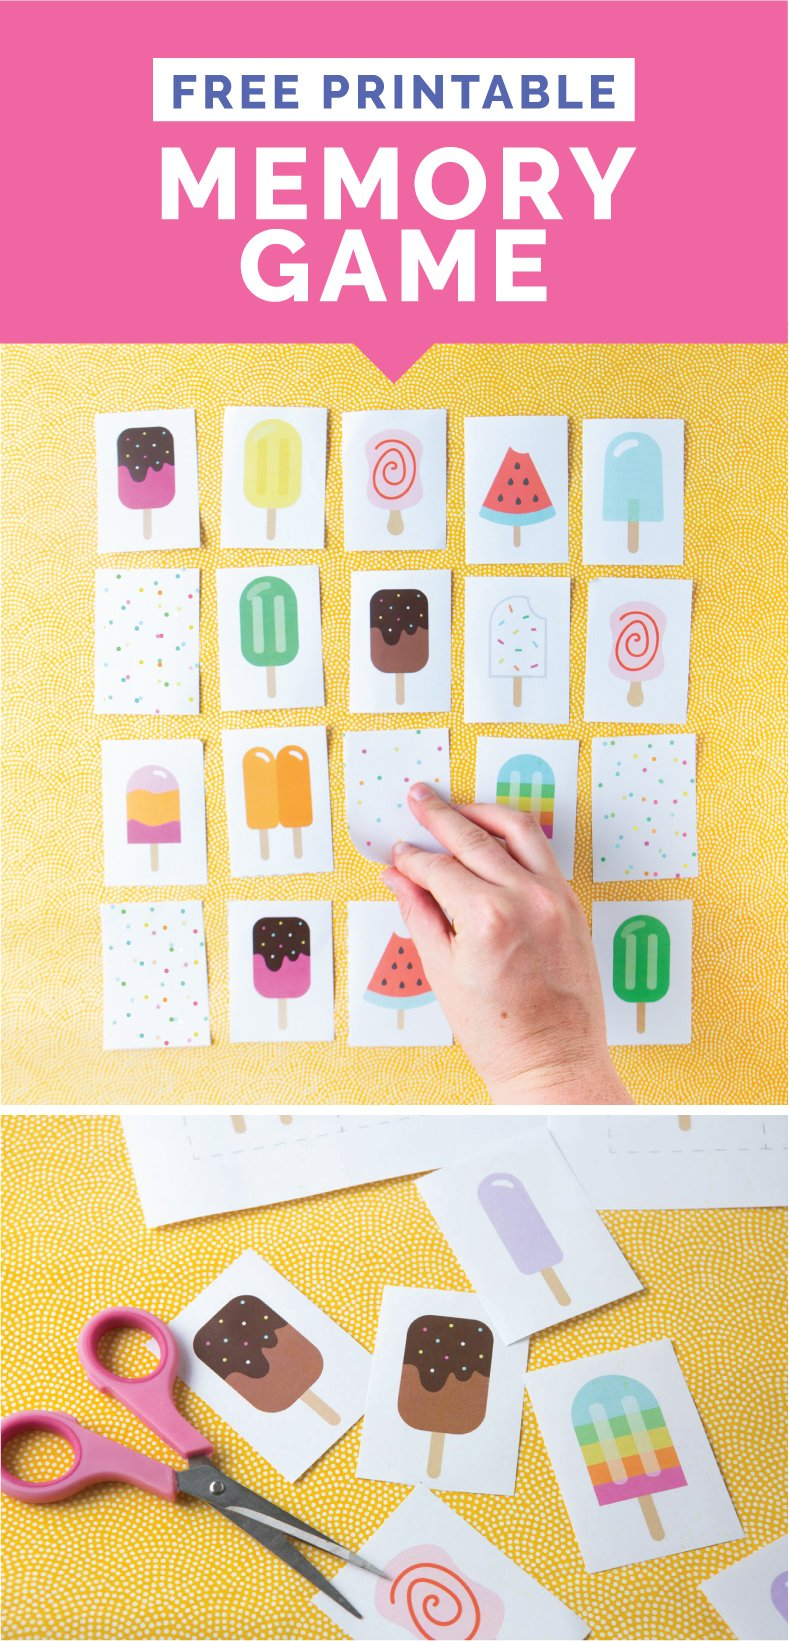 Download this FREE popsicle-themed Printable Memory Game for Kids! Great for kids and students ages 3-12! #freeprintable #games #memorygame #homeschooling